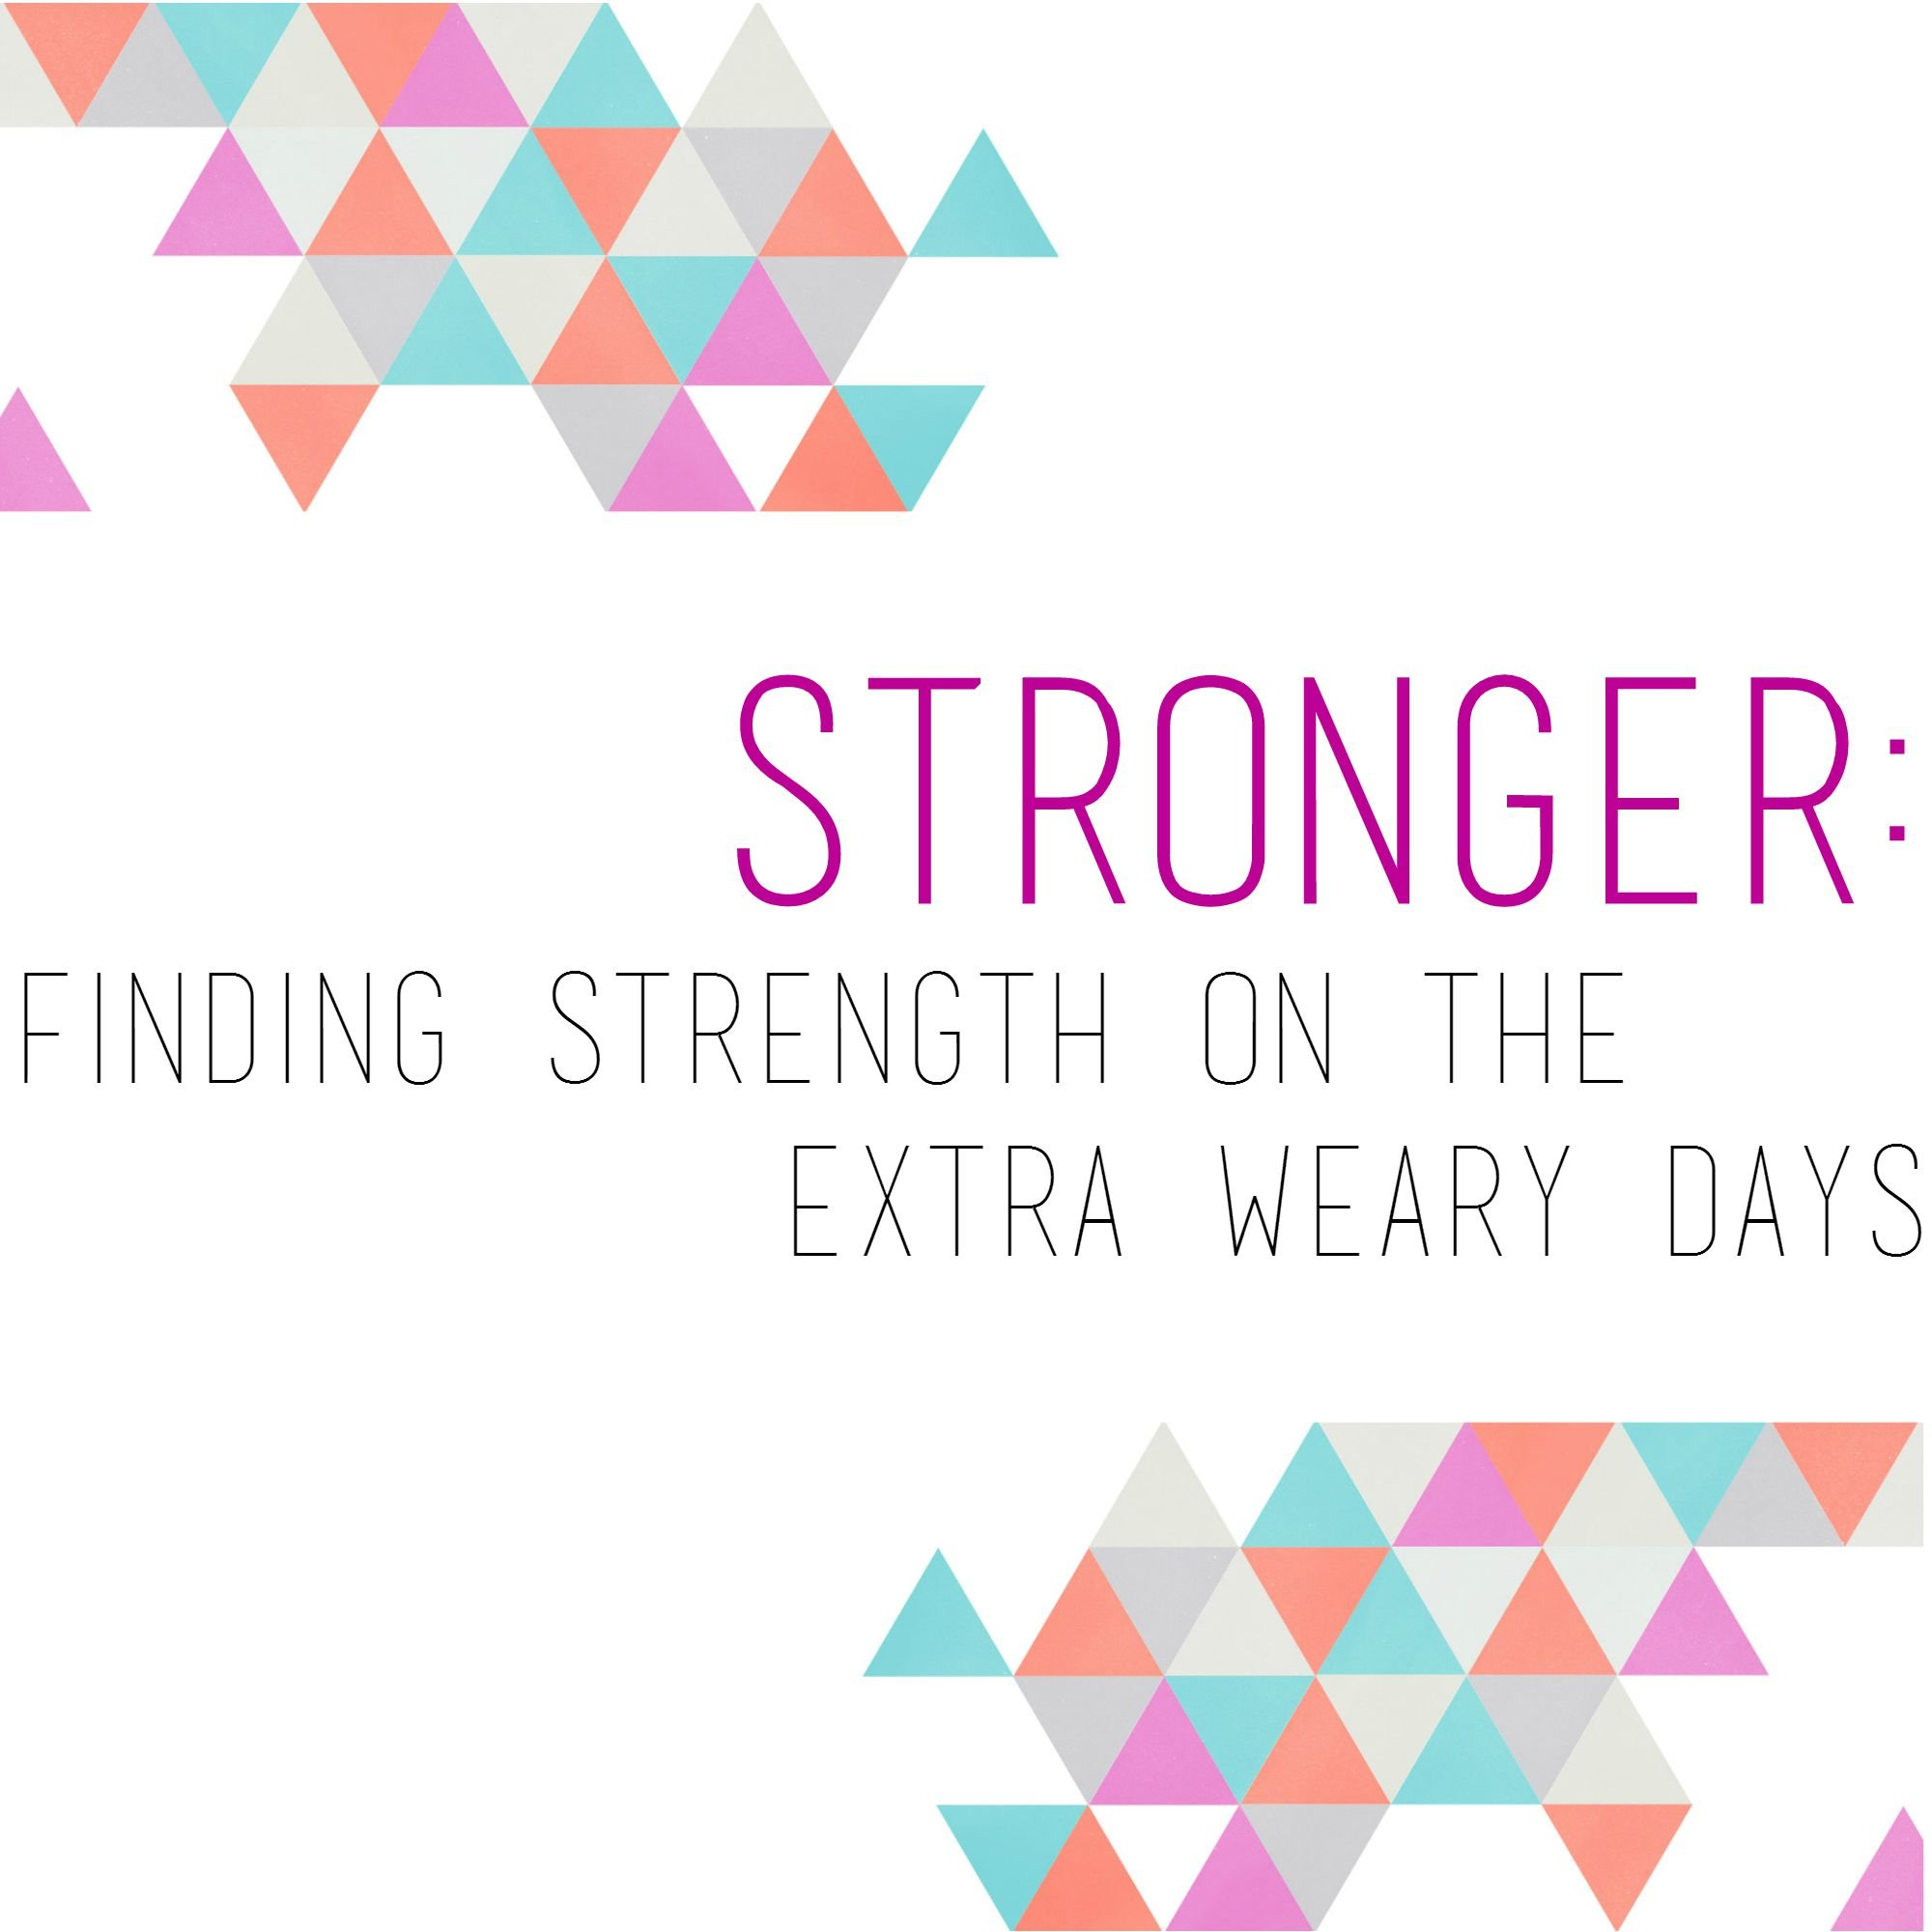 STRONGER – Finding Strength on the Extra Weary Days